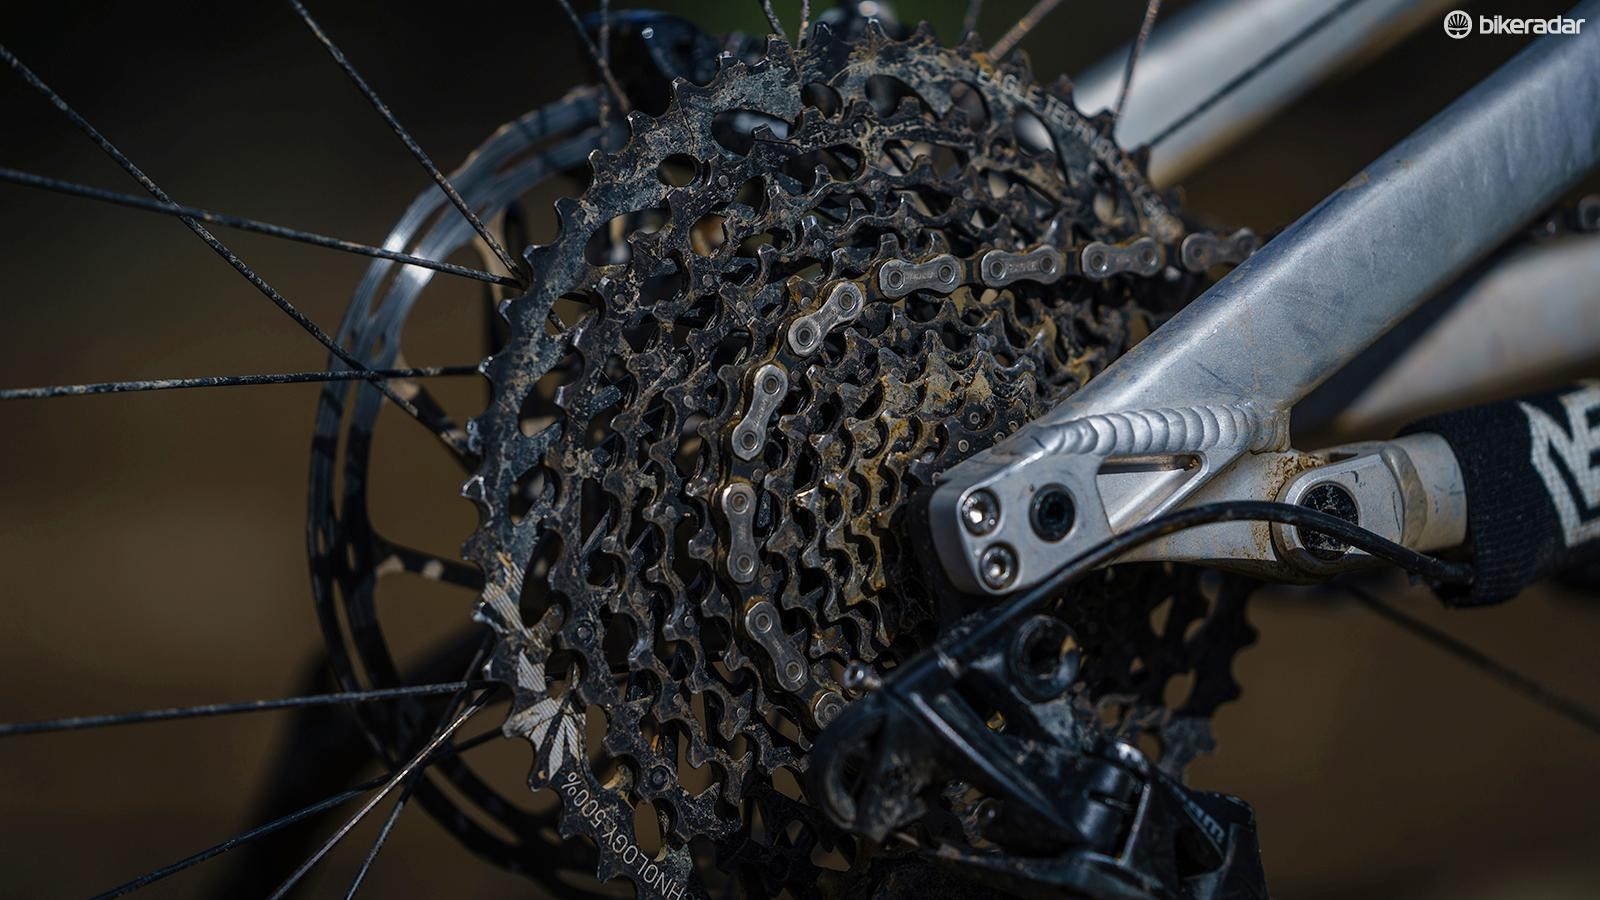 SRAM's 1x12 GX Eagle transmission delivers a massive gear range which is certainly a real plus on big days out in the hills